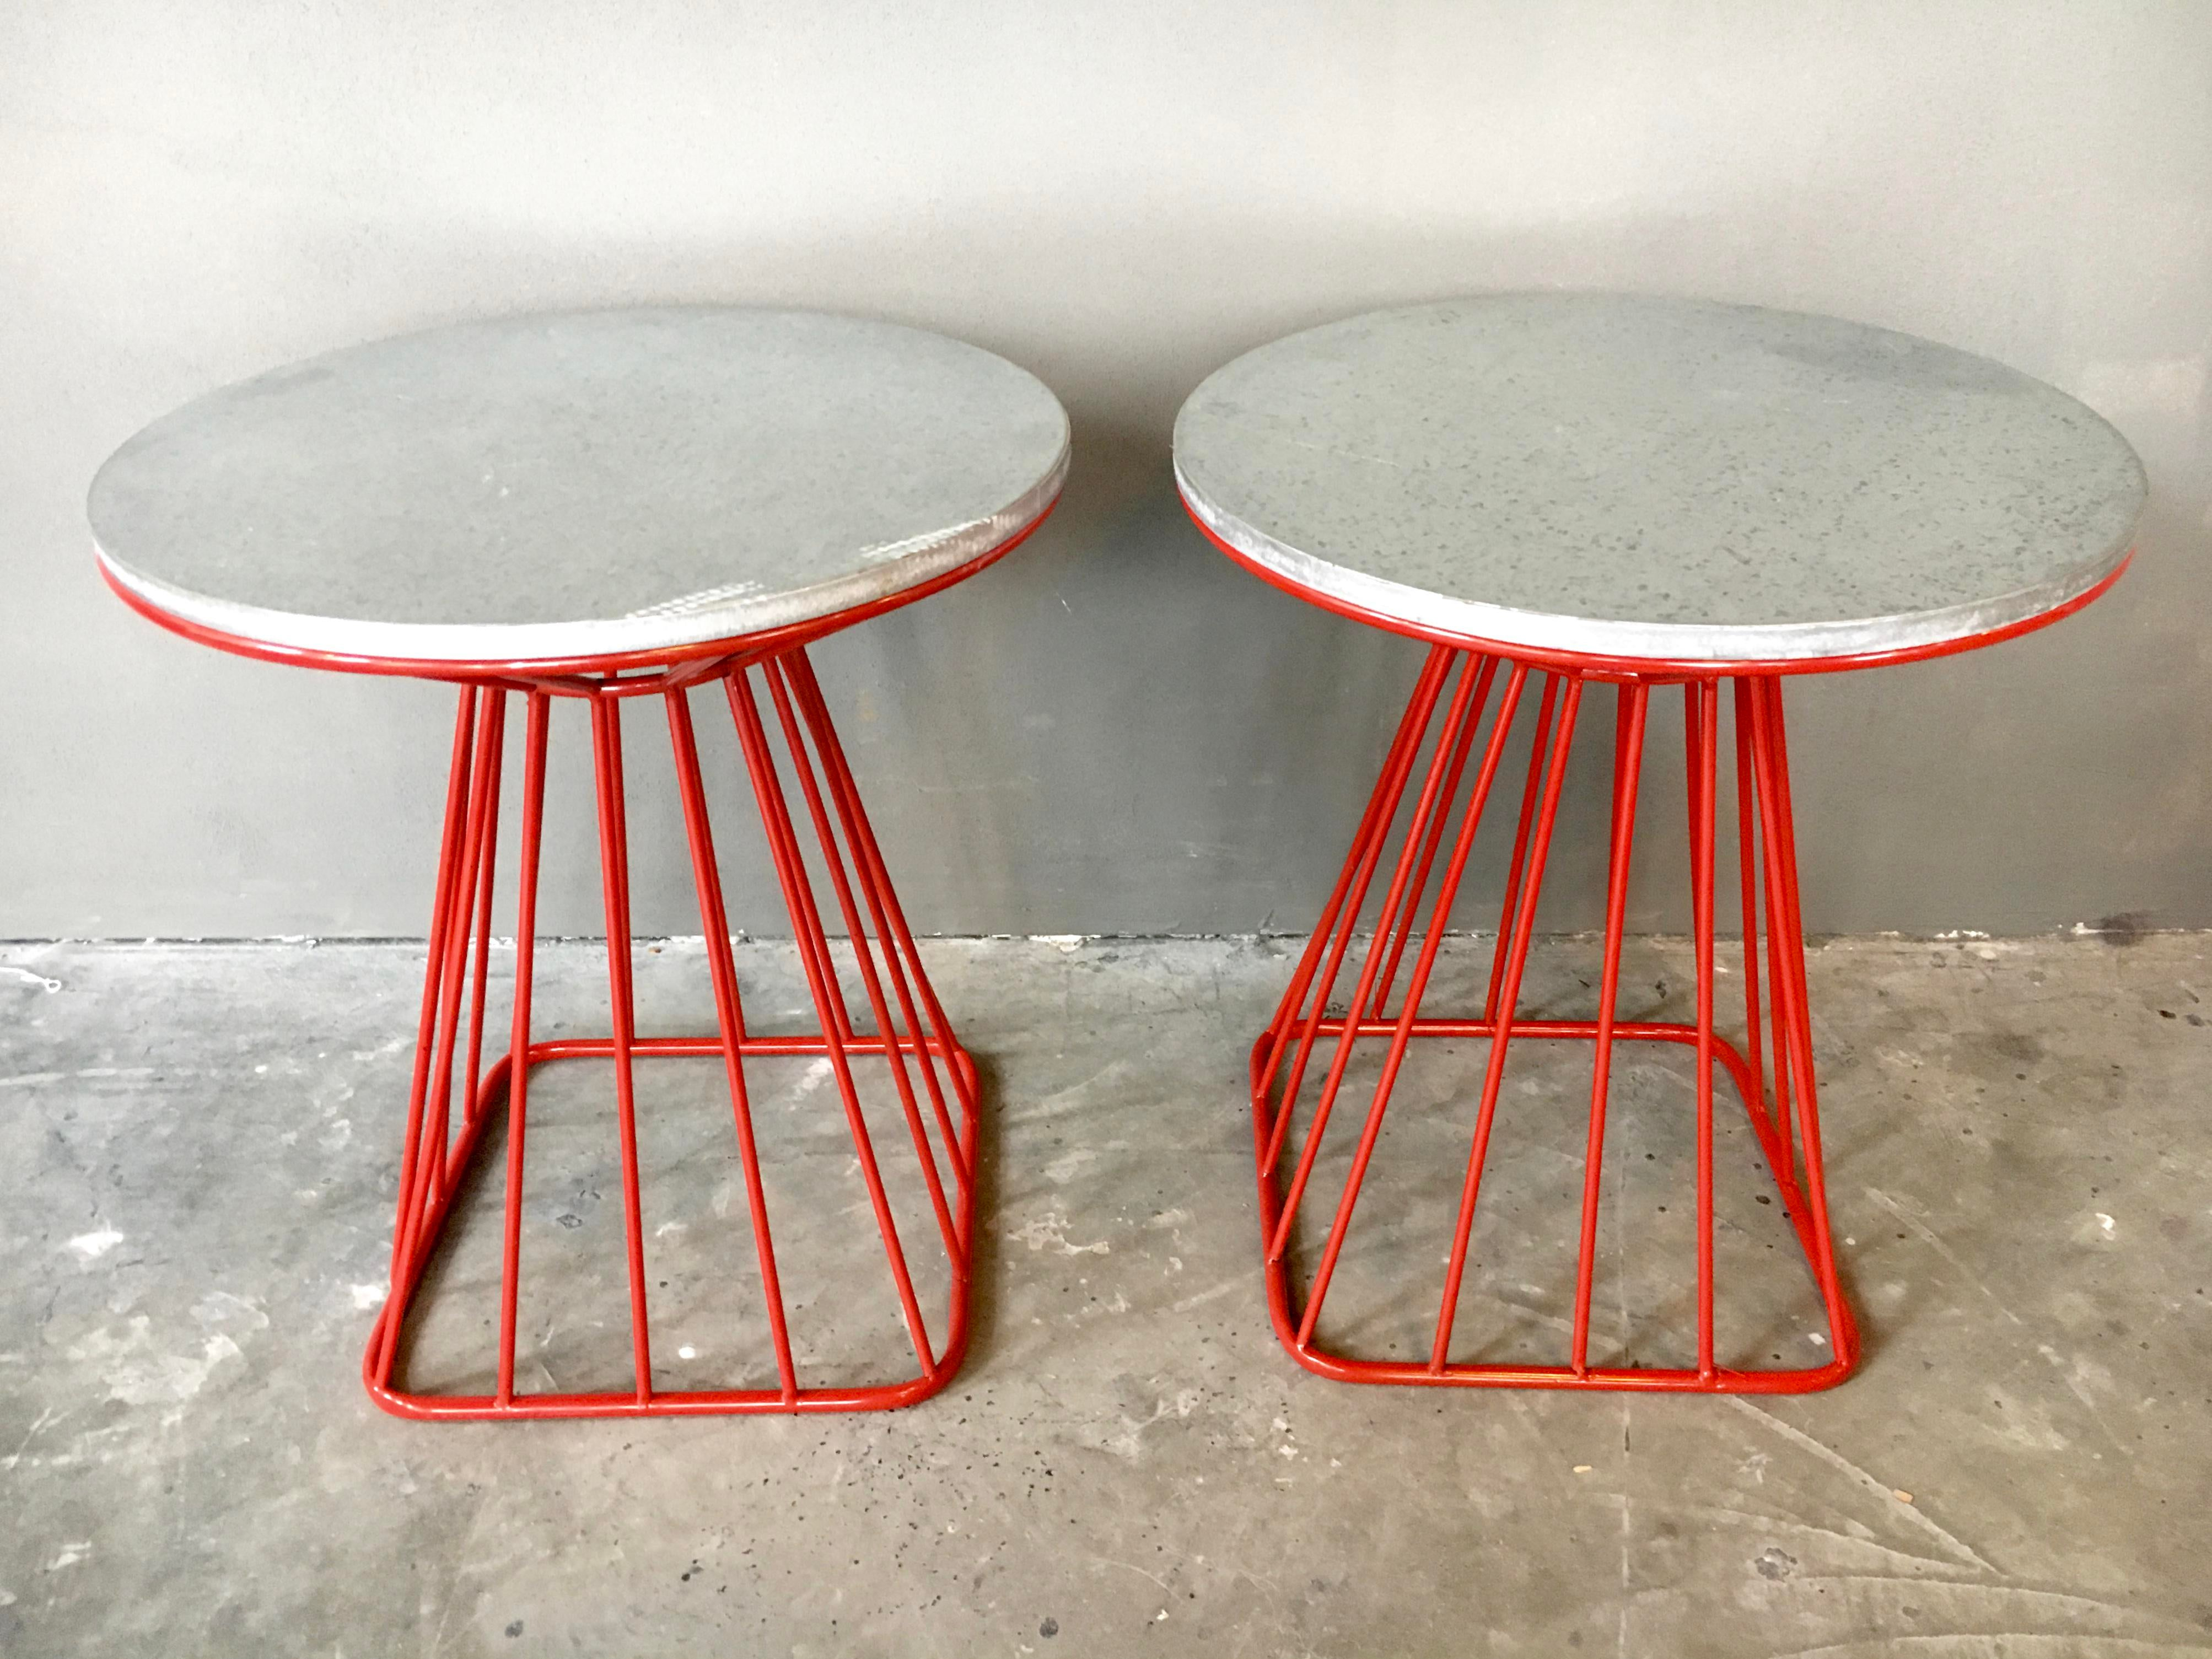 Red wire table wiring info platner style mid century red wire side tables a pair chairish rh chairish com nec wire table wire resistance table greentooth Images